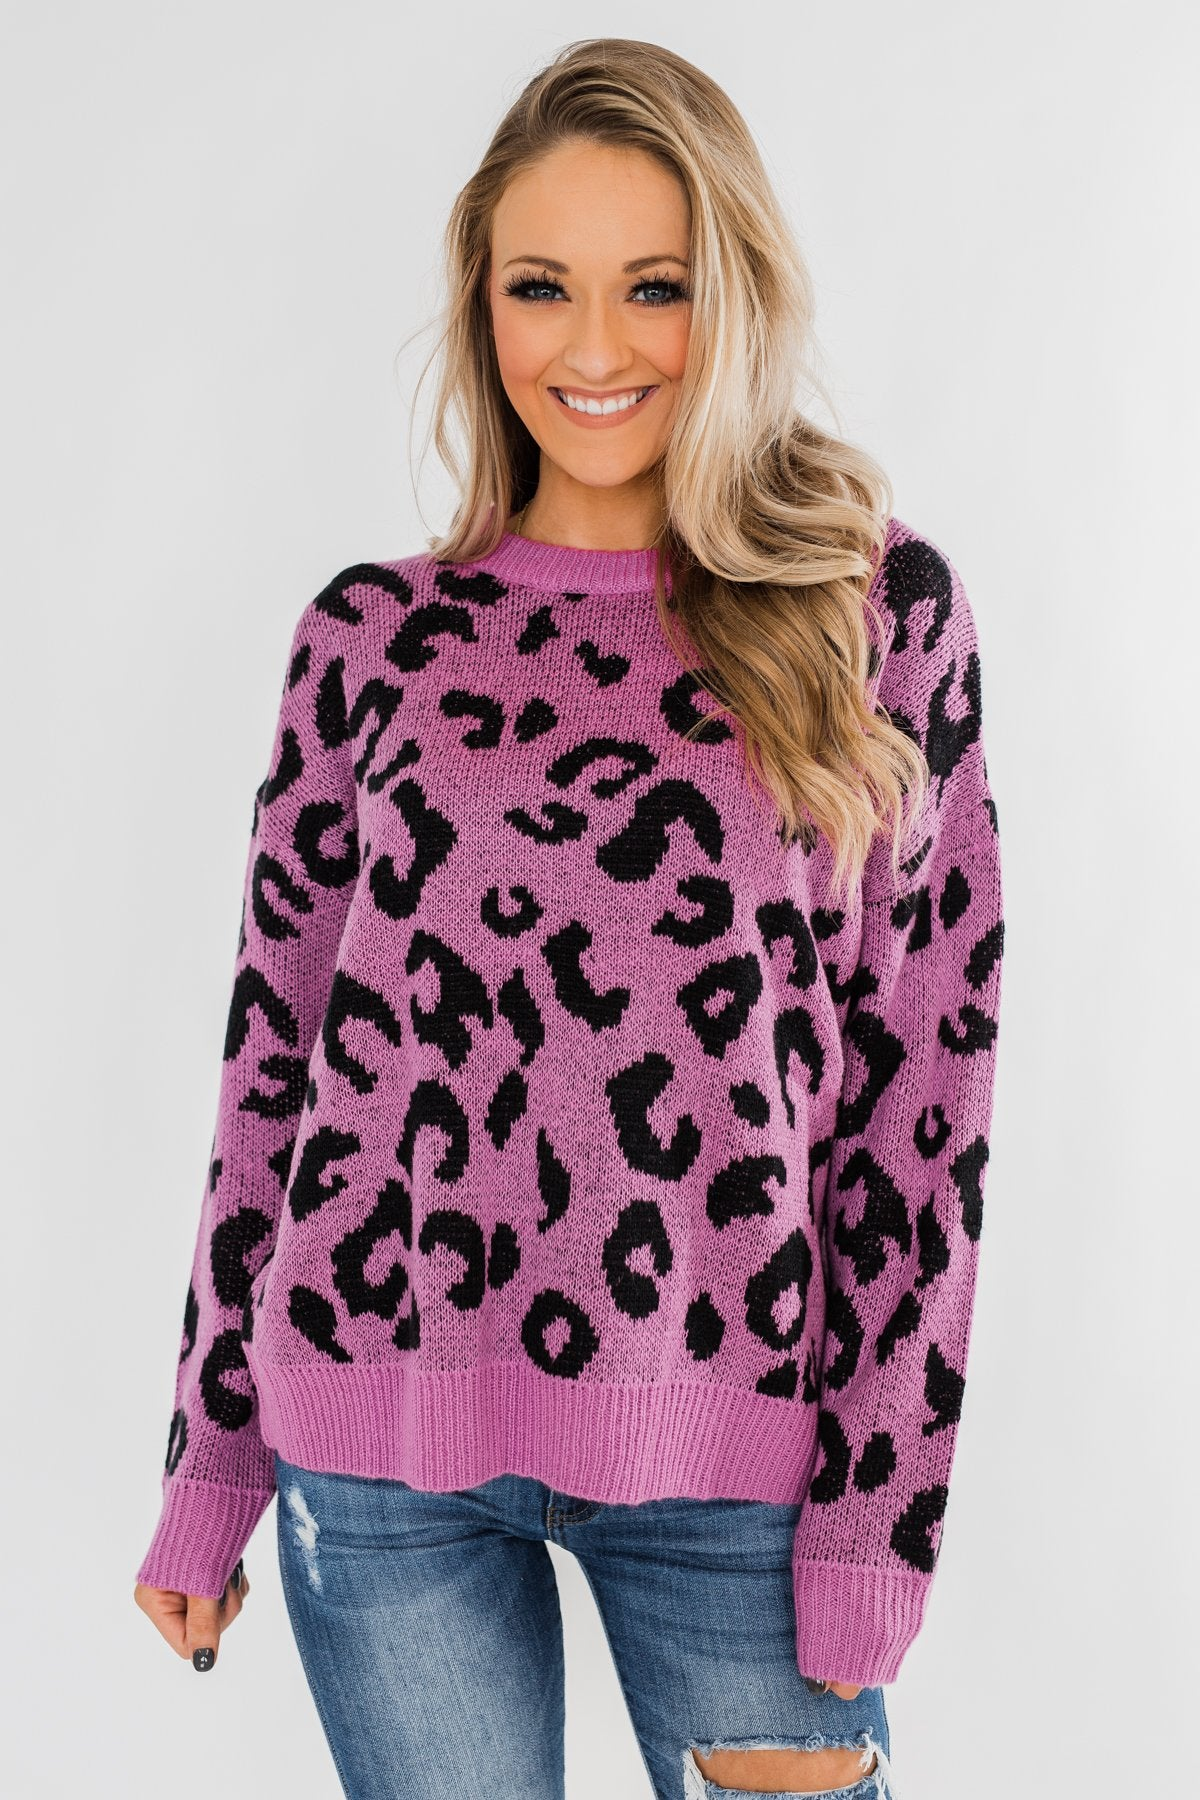 Lead Me On Round Neck Knit Sweater- Purple